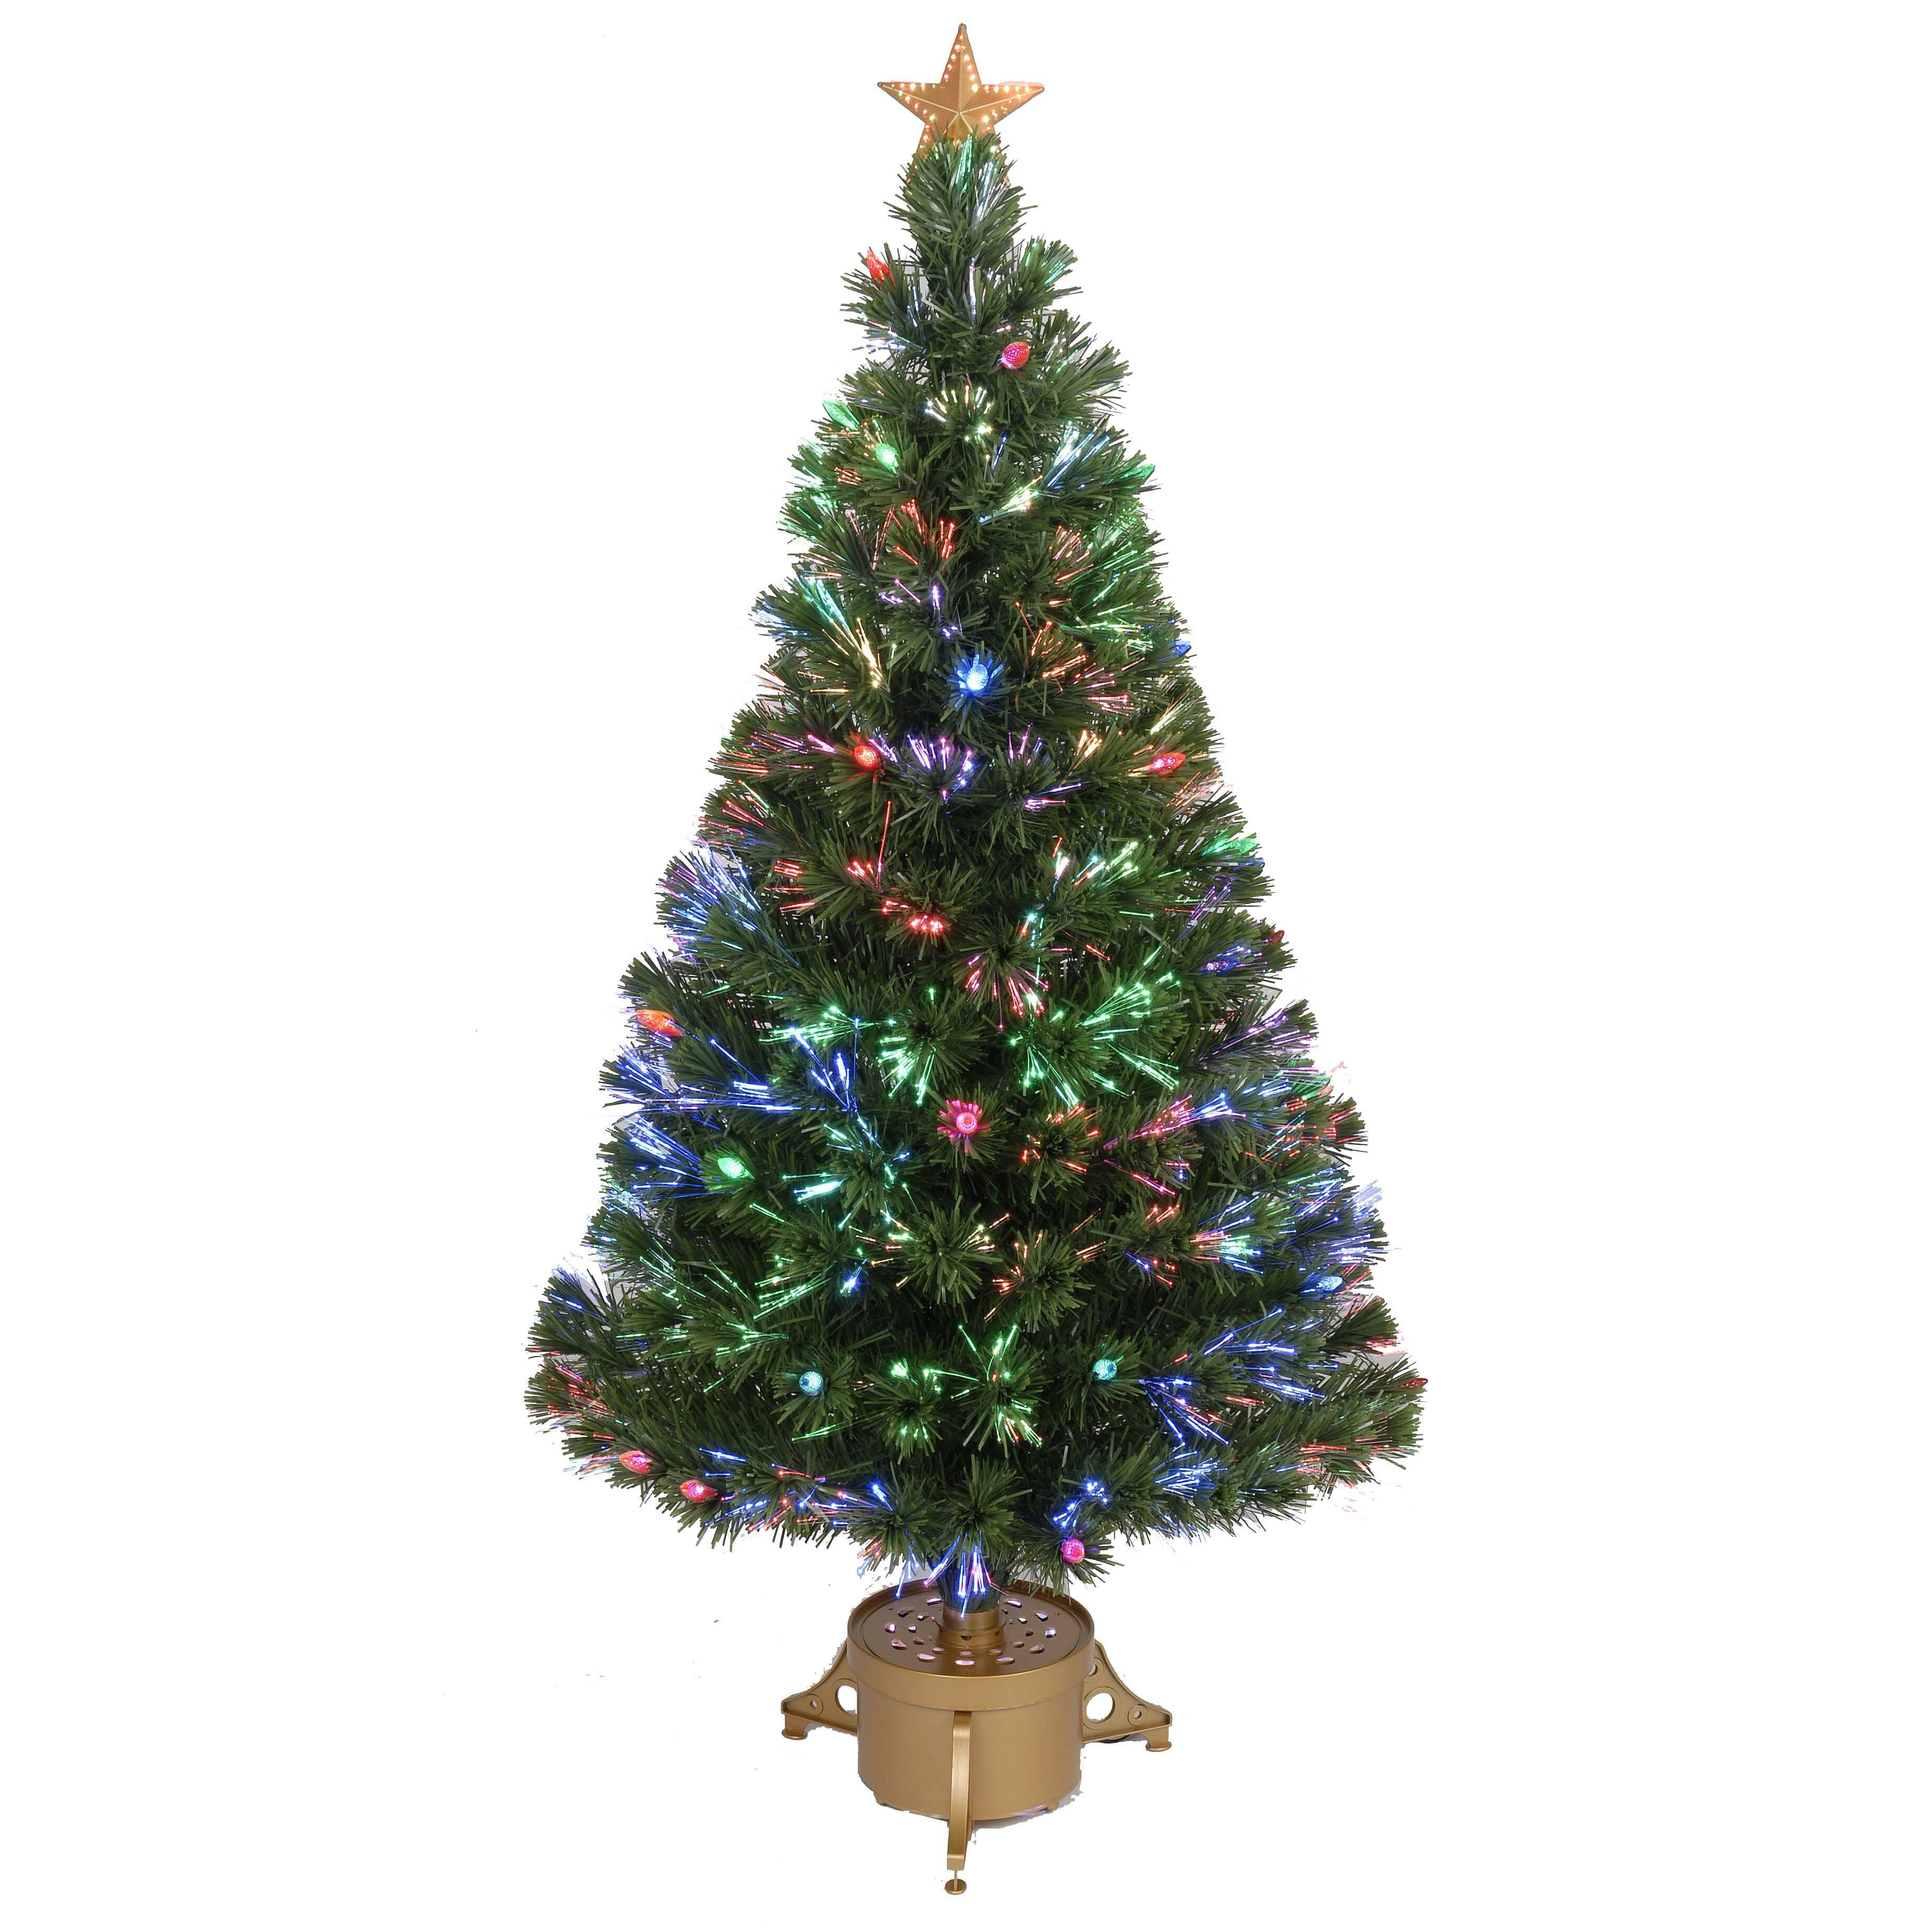 Tabletop Fibre Optic Christmas Tree: Fiber Optic 4' Green Artificial Christmas Tree With LED